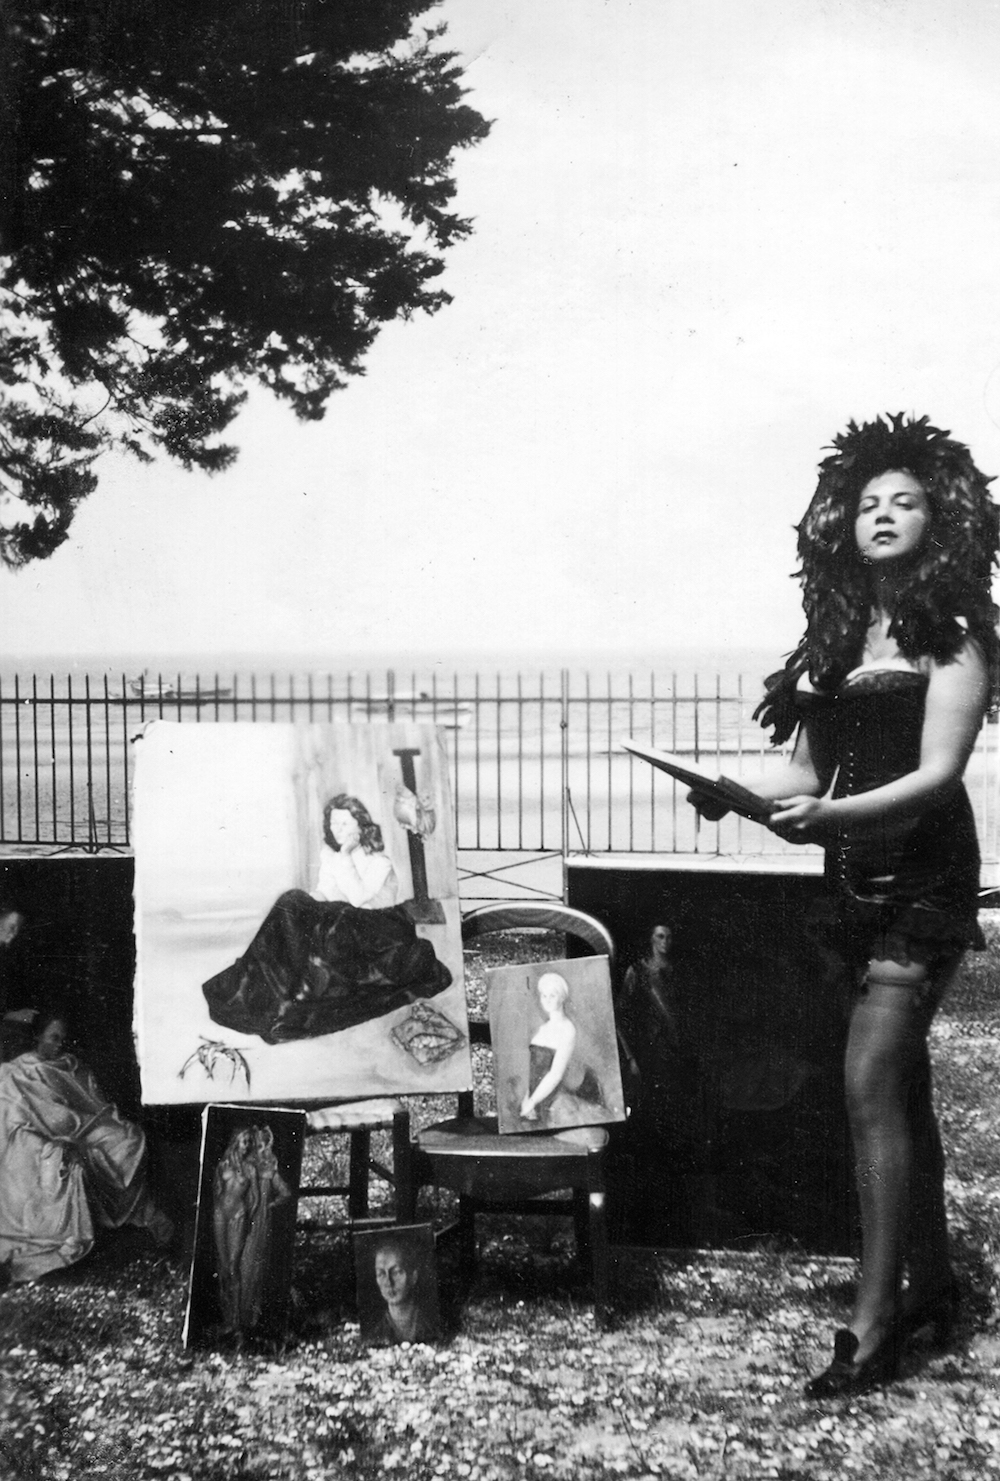 leonor-fini_arcachon_1940_anonymous_courtesy_of_leonor_fini_estate.jpg